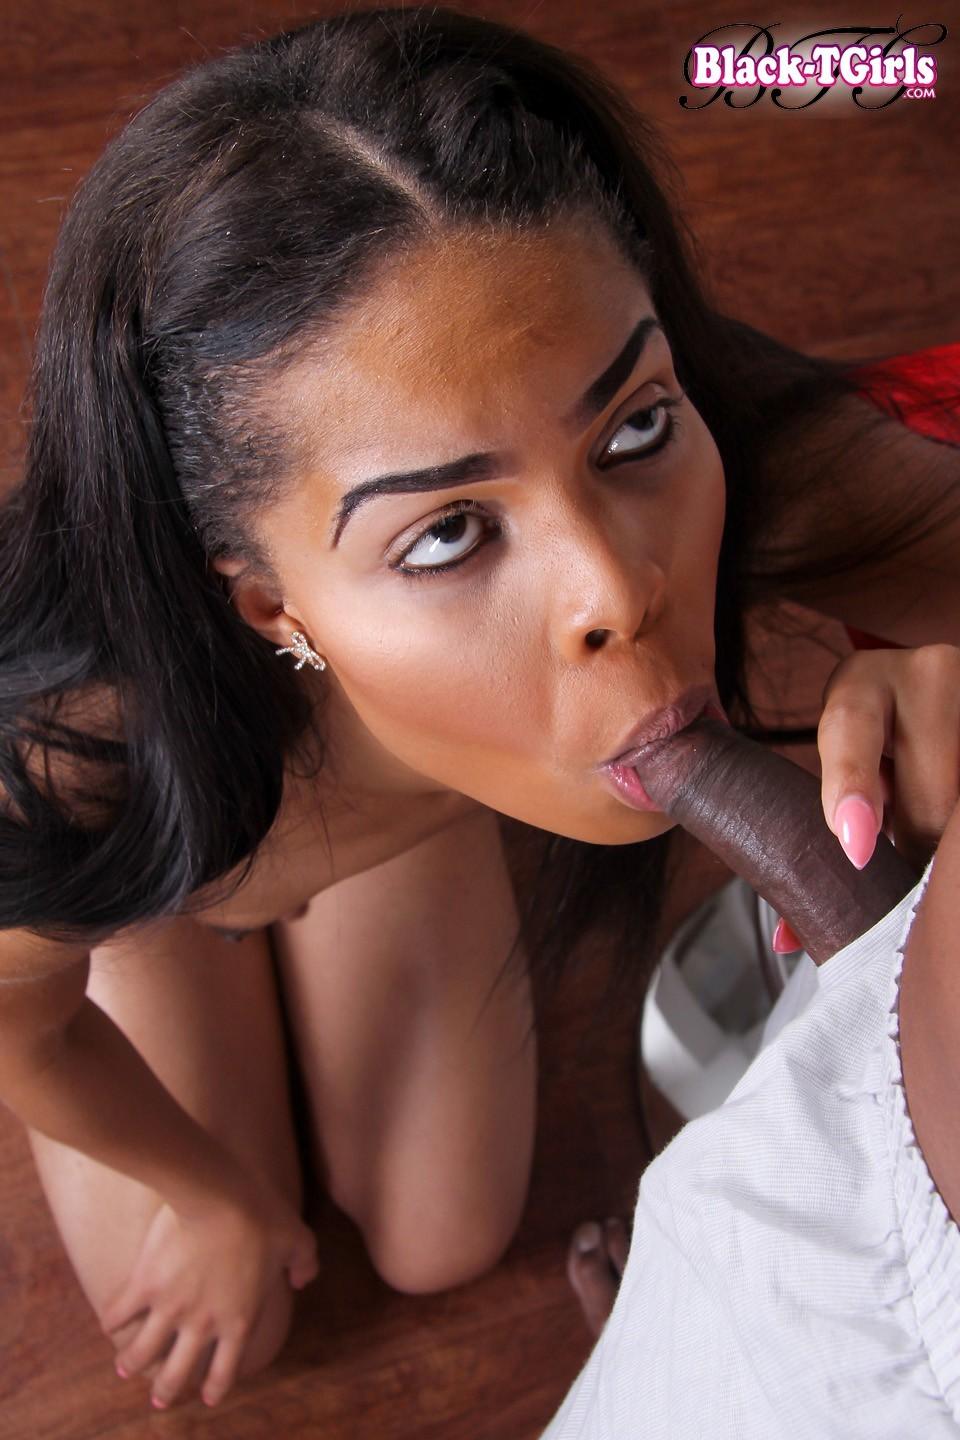 provoking black t girl lola foxx nailing